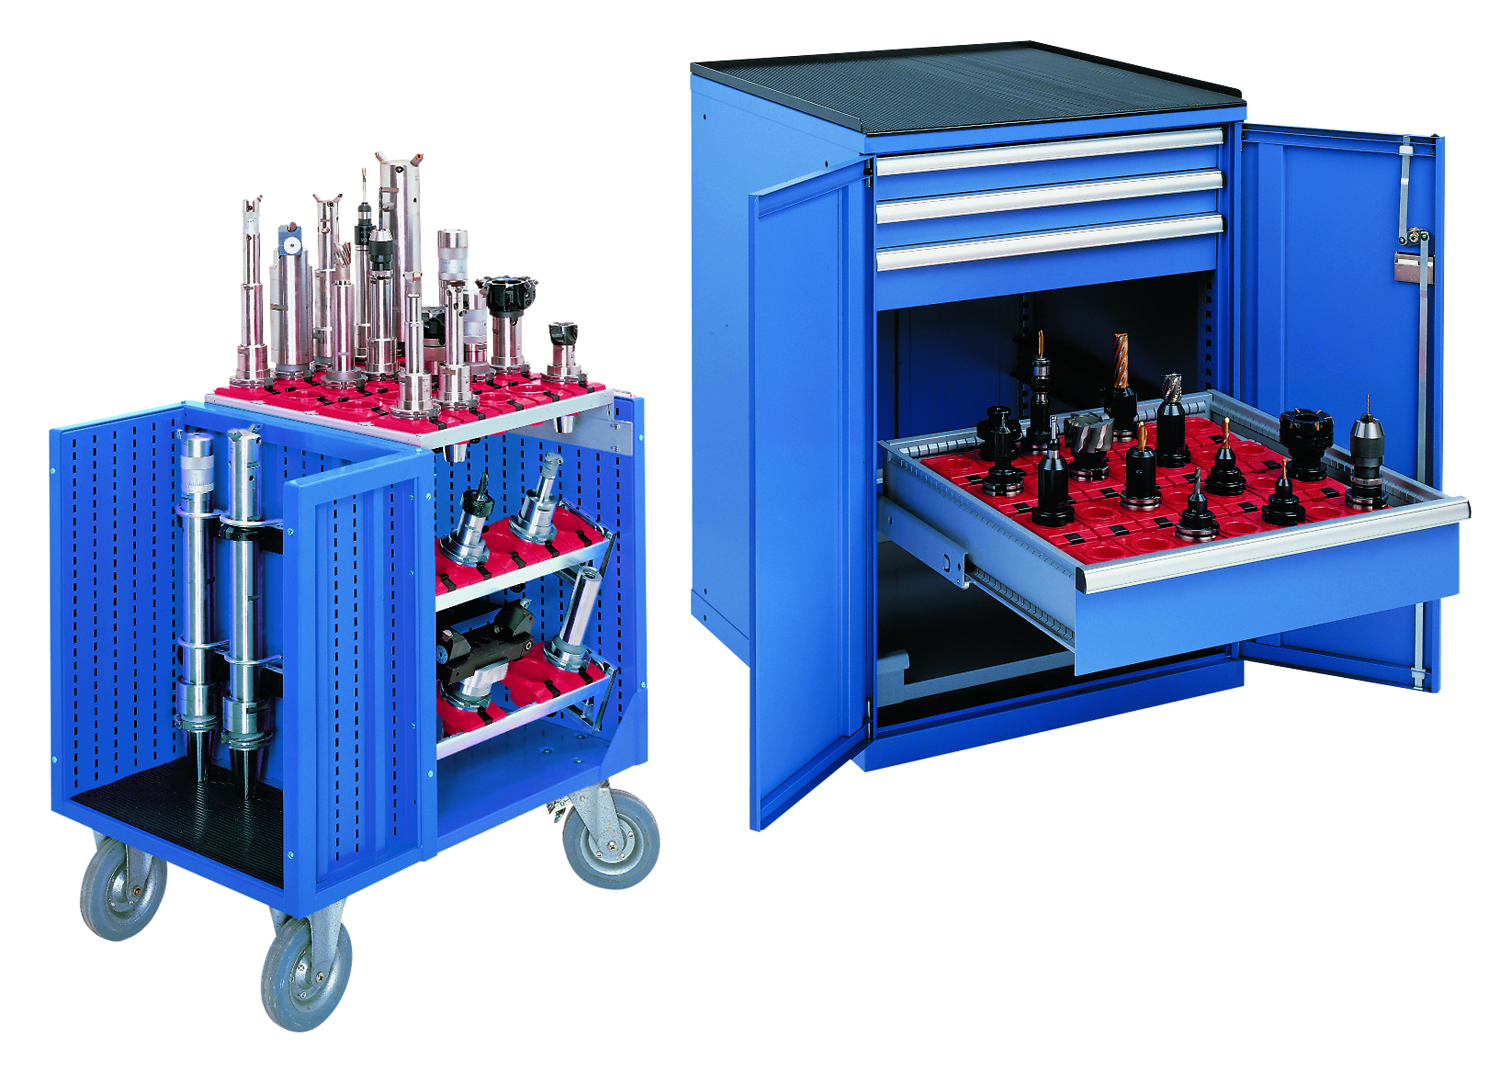 Modular And Lockable CNC Tool Storage Cabinets And Transporters From Lista  Accommodate A Variety Of Standard Sized CNC Tool Holders To Form The Core  Of The ...